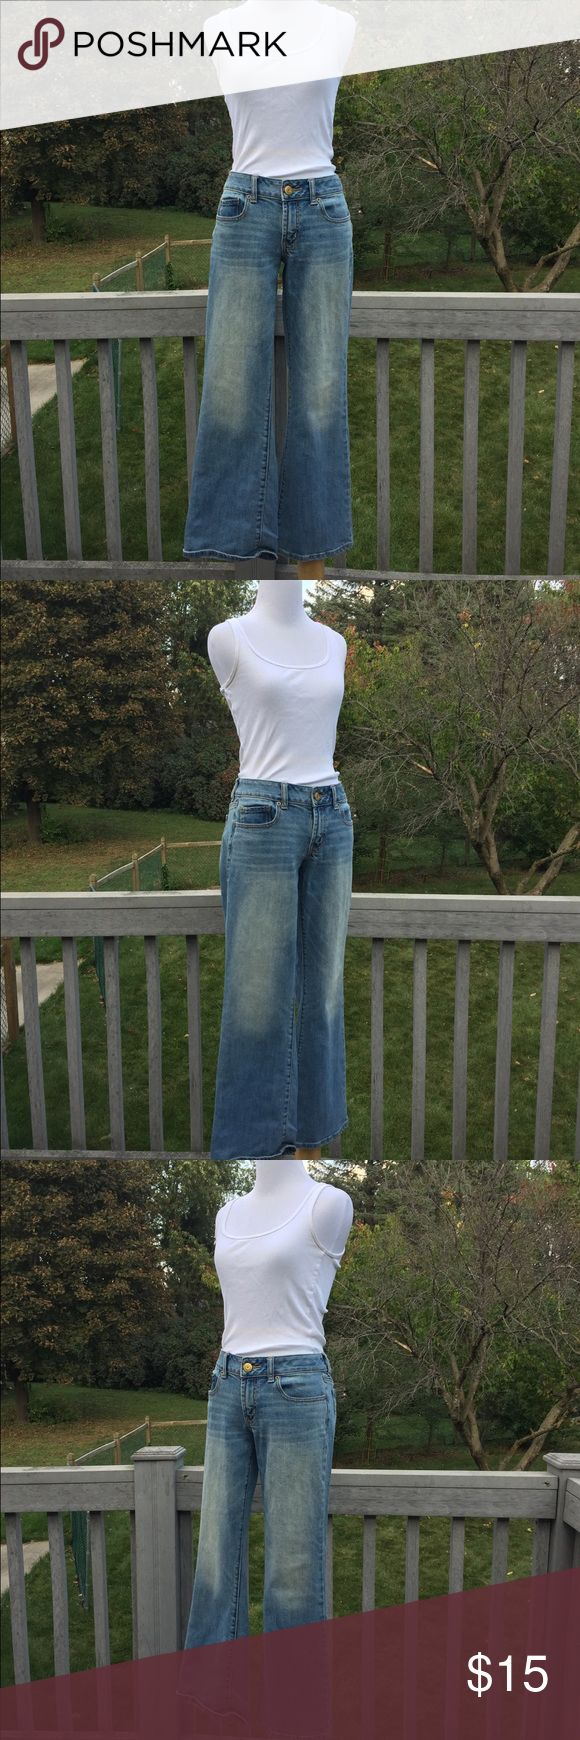 American Eagle Jeans These light-wash jeans from American Eagle are the Favorite Boyfriend style, meaning they sit on the hips, and are relaxed through the thighs into a wide leg. They are a size 8, and a short length. American Eagle Outfitters Jeans Boyfriend